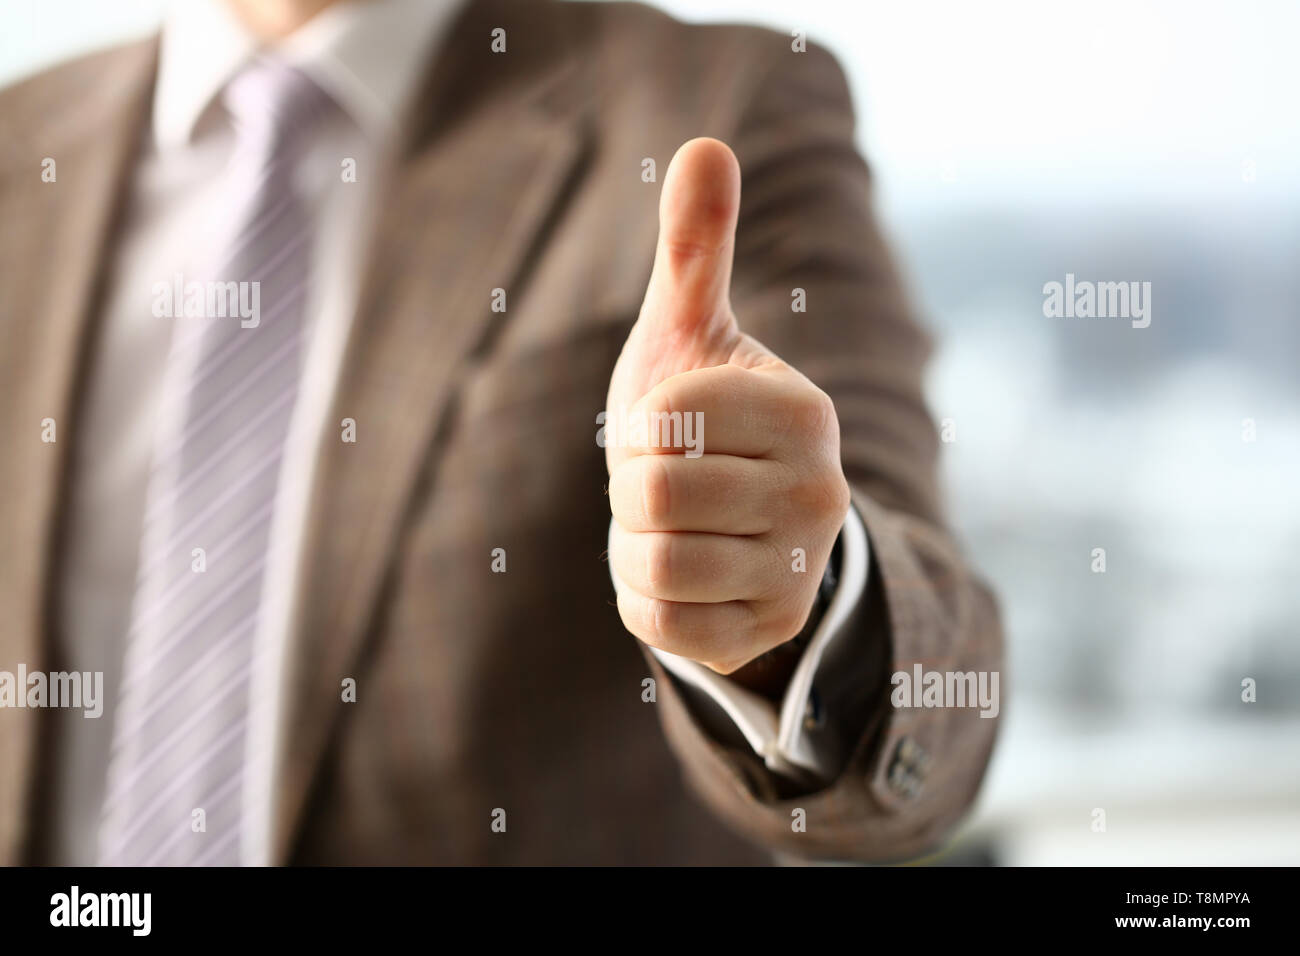 Male arm show OK or confirm during - Stock Image